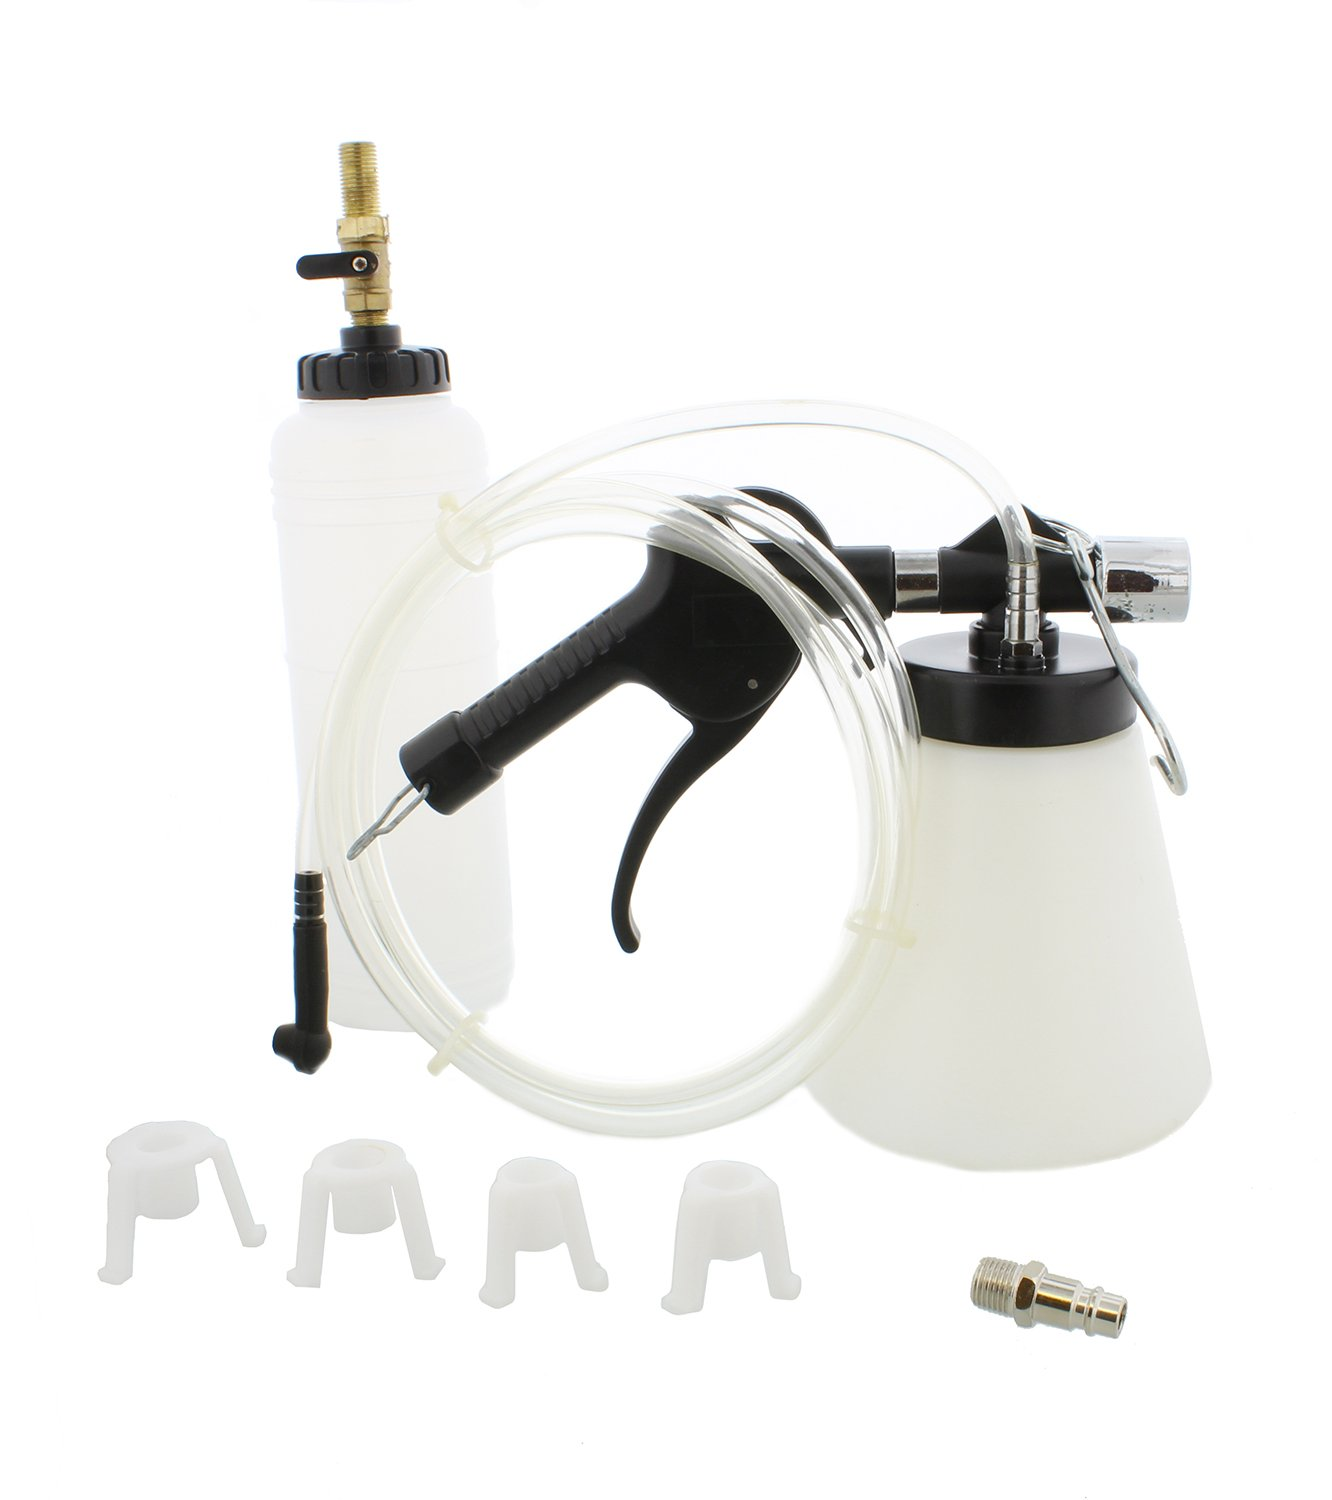 ABN Pneumatic Vacuum Brake and Clutch Bleeder Kit, 0.75 Liter - Master Cylinder 90-120 PSI Air Pressure Fluid Bleed Tool